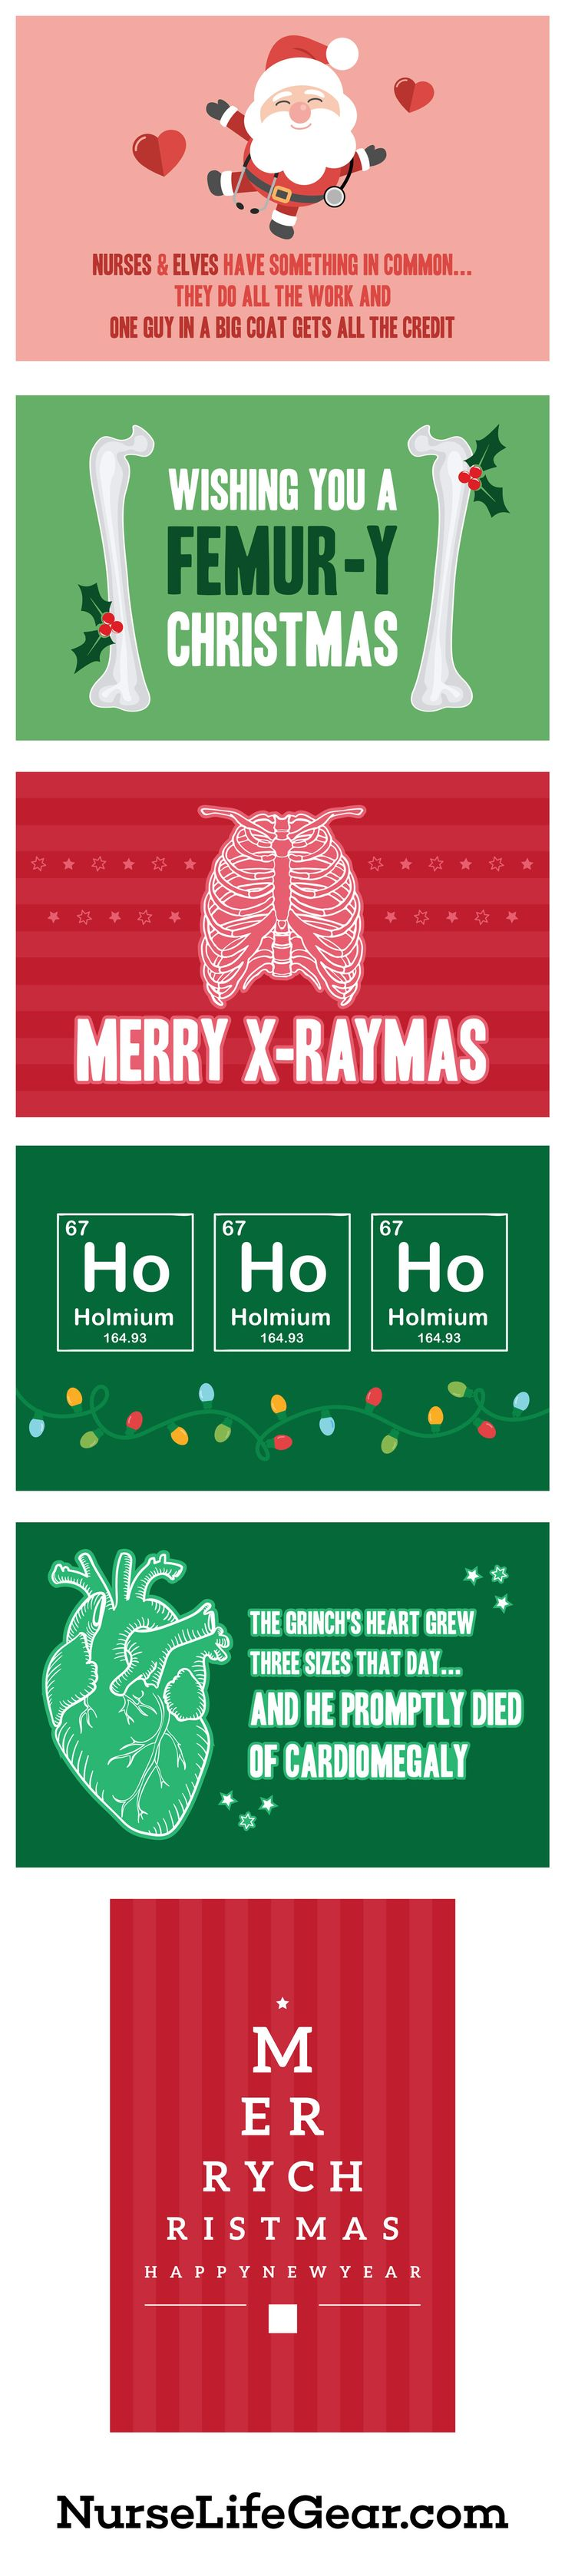 Funny Medical Christmas Cards for Nurses - Merry X-raymas, HoHoHo, Wishing you a Femur-y Christmas - For doctors, med students, nurses. Instant download and print for last minute gifts.